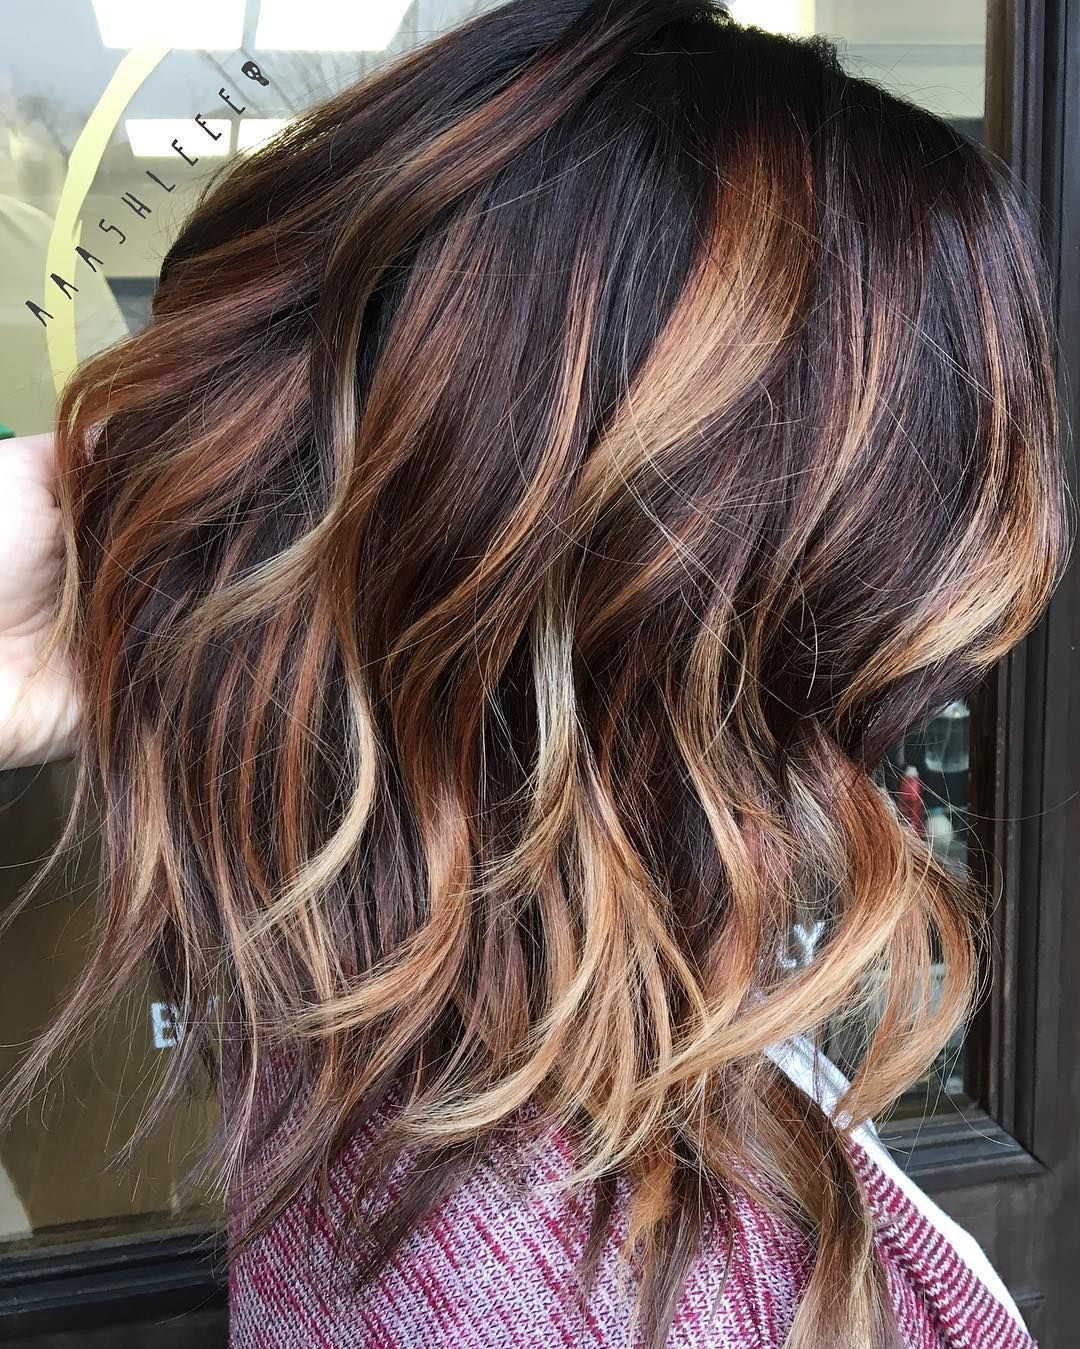 50 Hottest Balayage Hair Ideas To Try In 2020 Hair Adviser In 2020 Fall Hair Color For Brunettes Hair Styles Balayage Hair